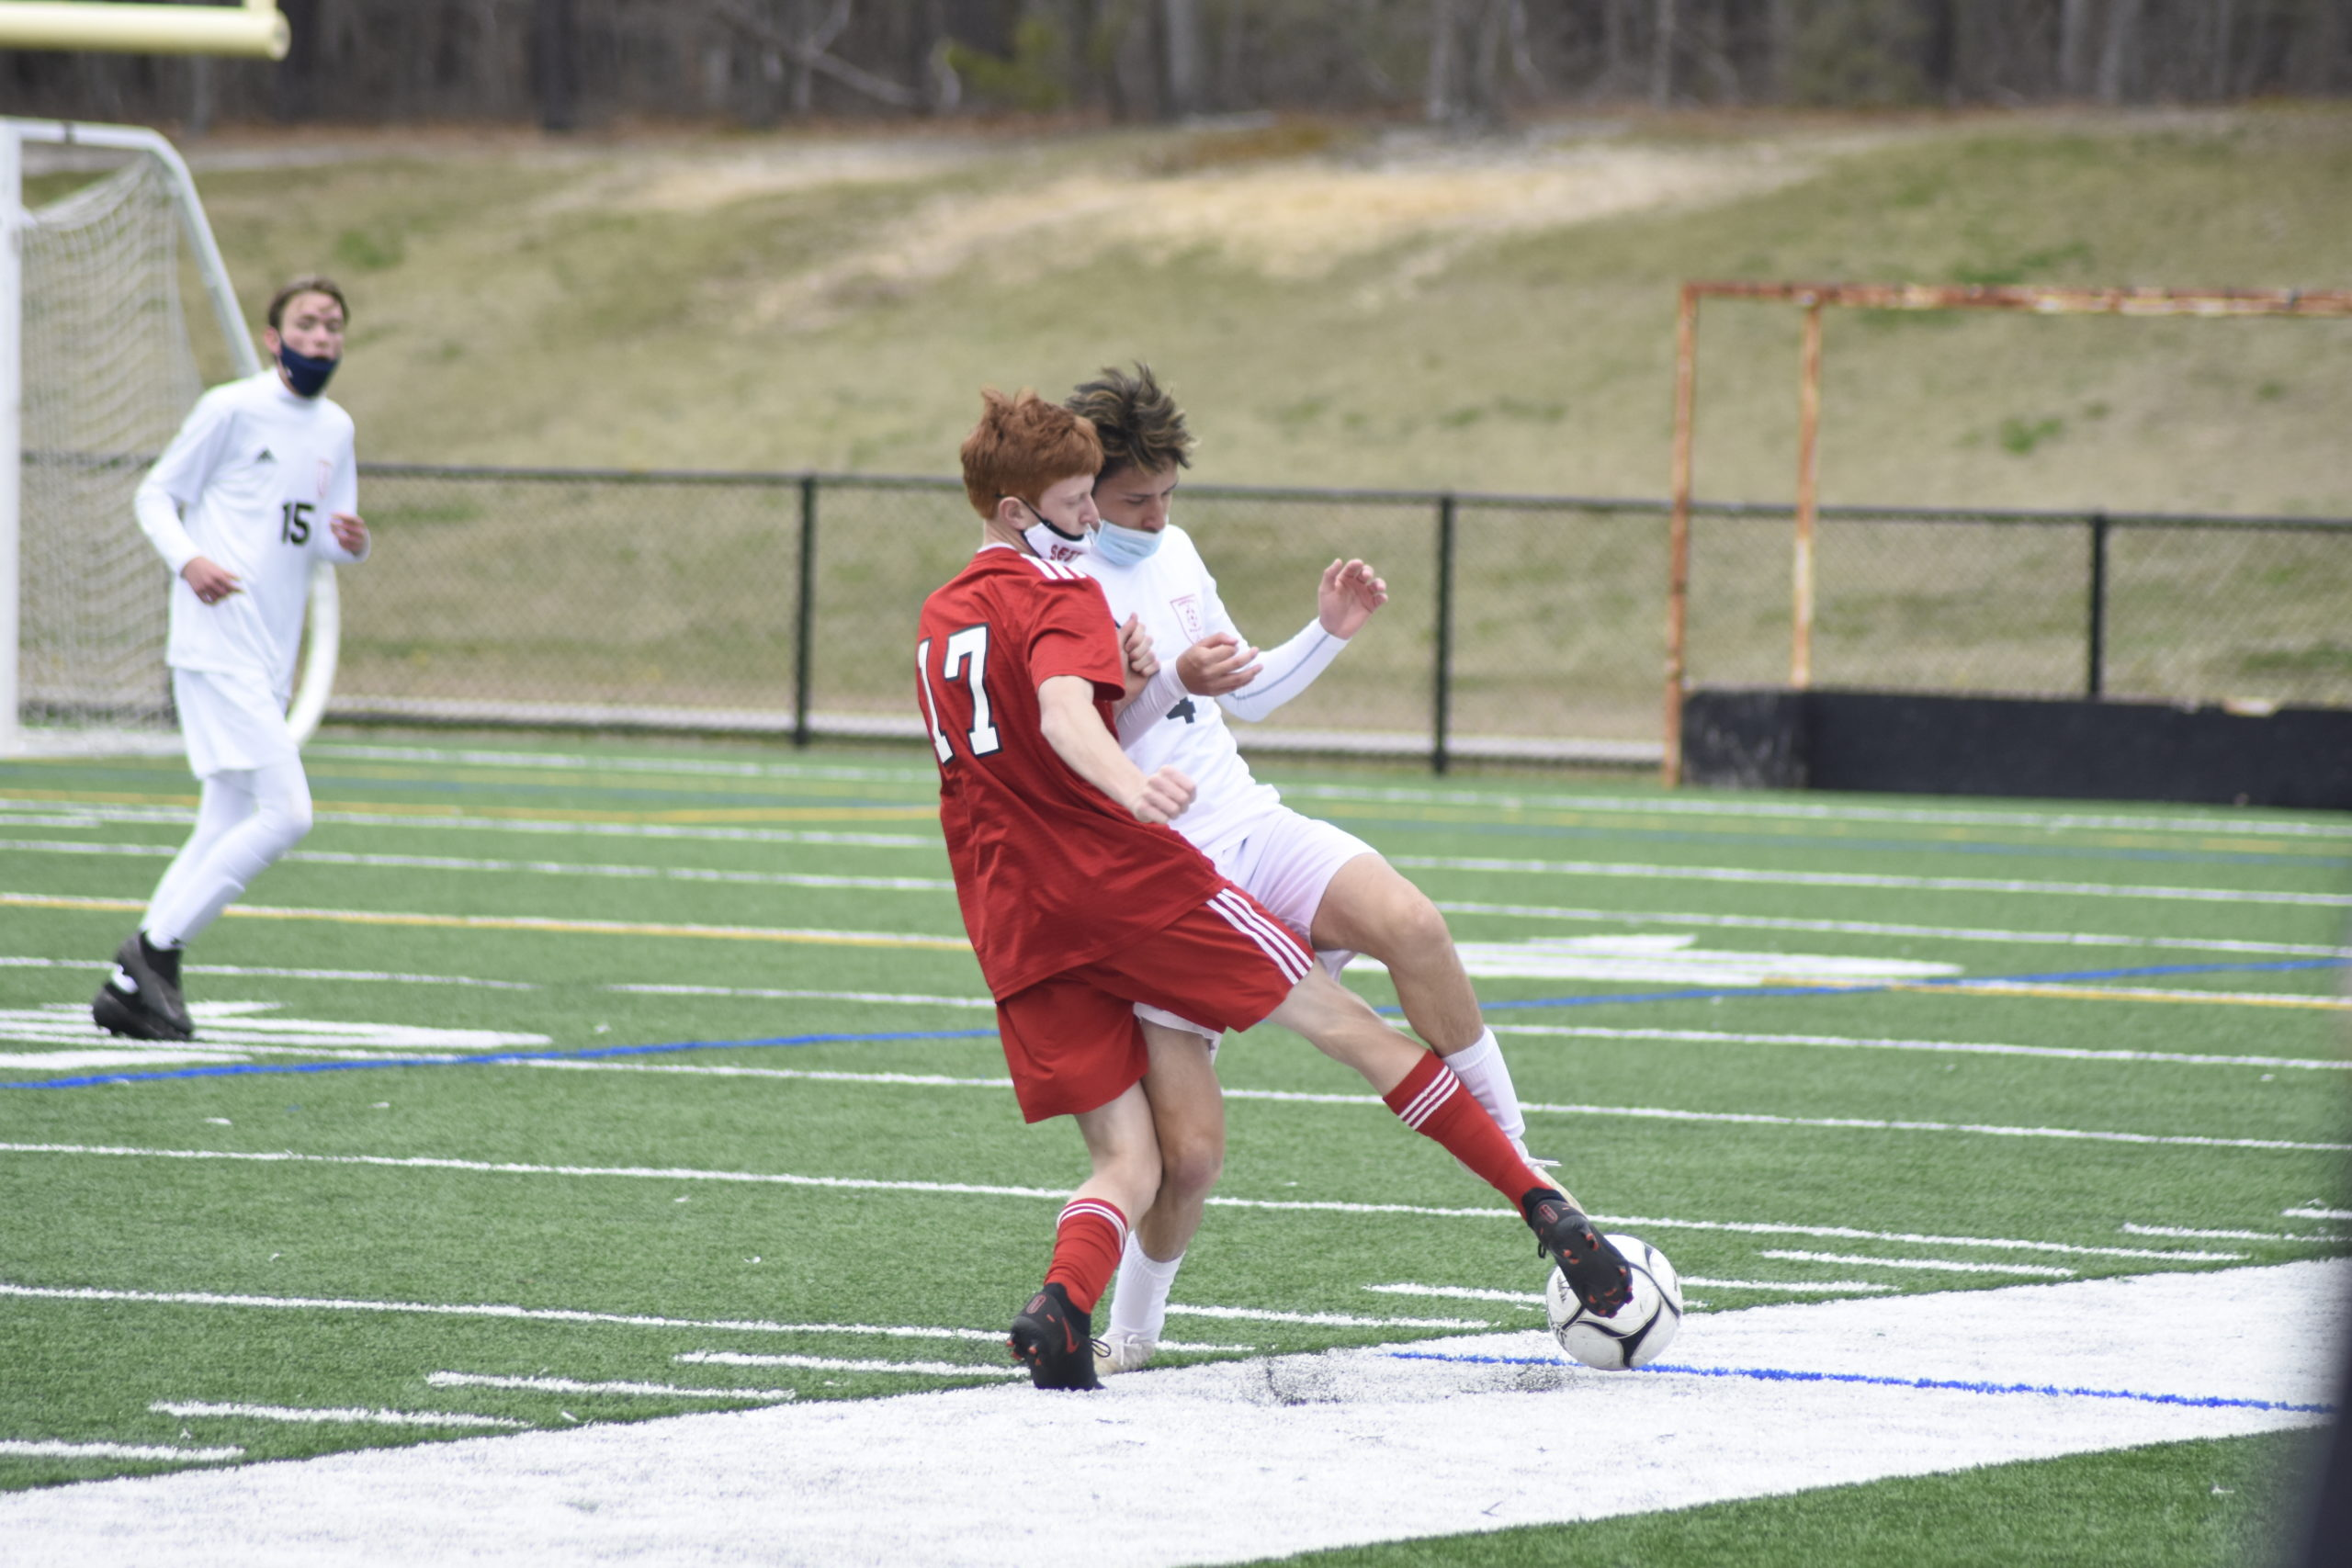 Pierson senior Richard Rodriguez tries to clear the ball but Southold junior Robert Guarriello blocks it.